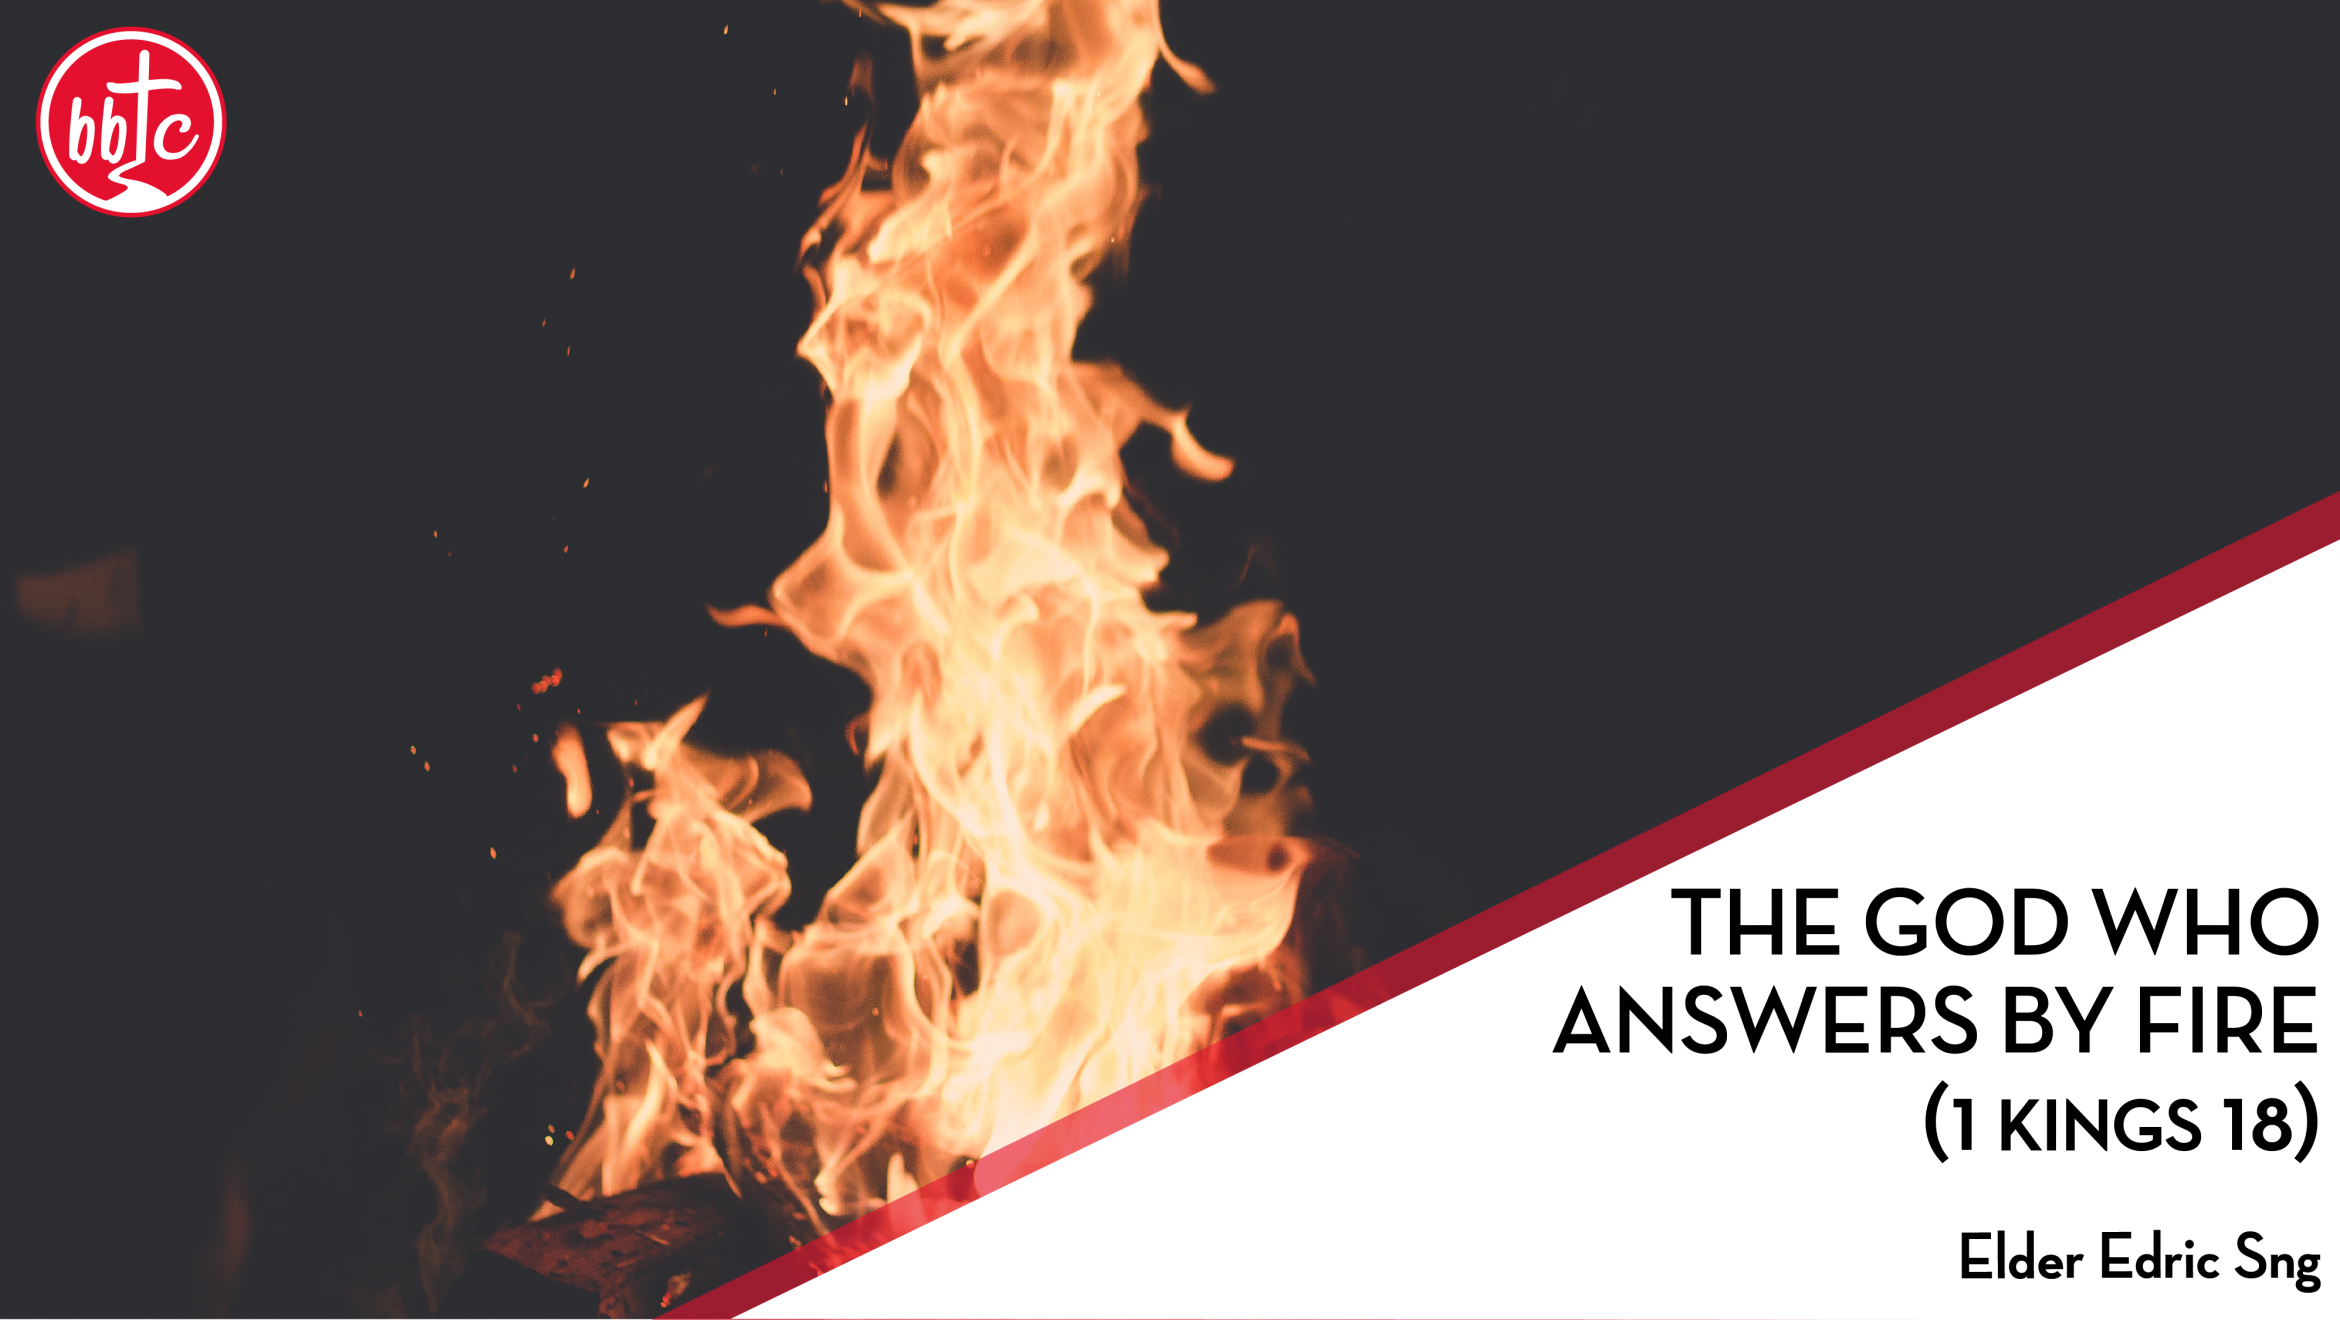 The God who answers by fire